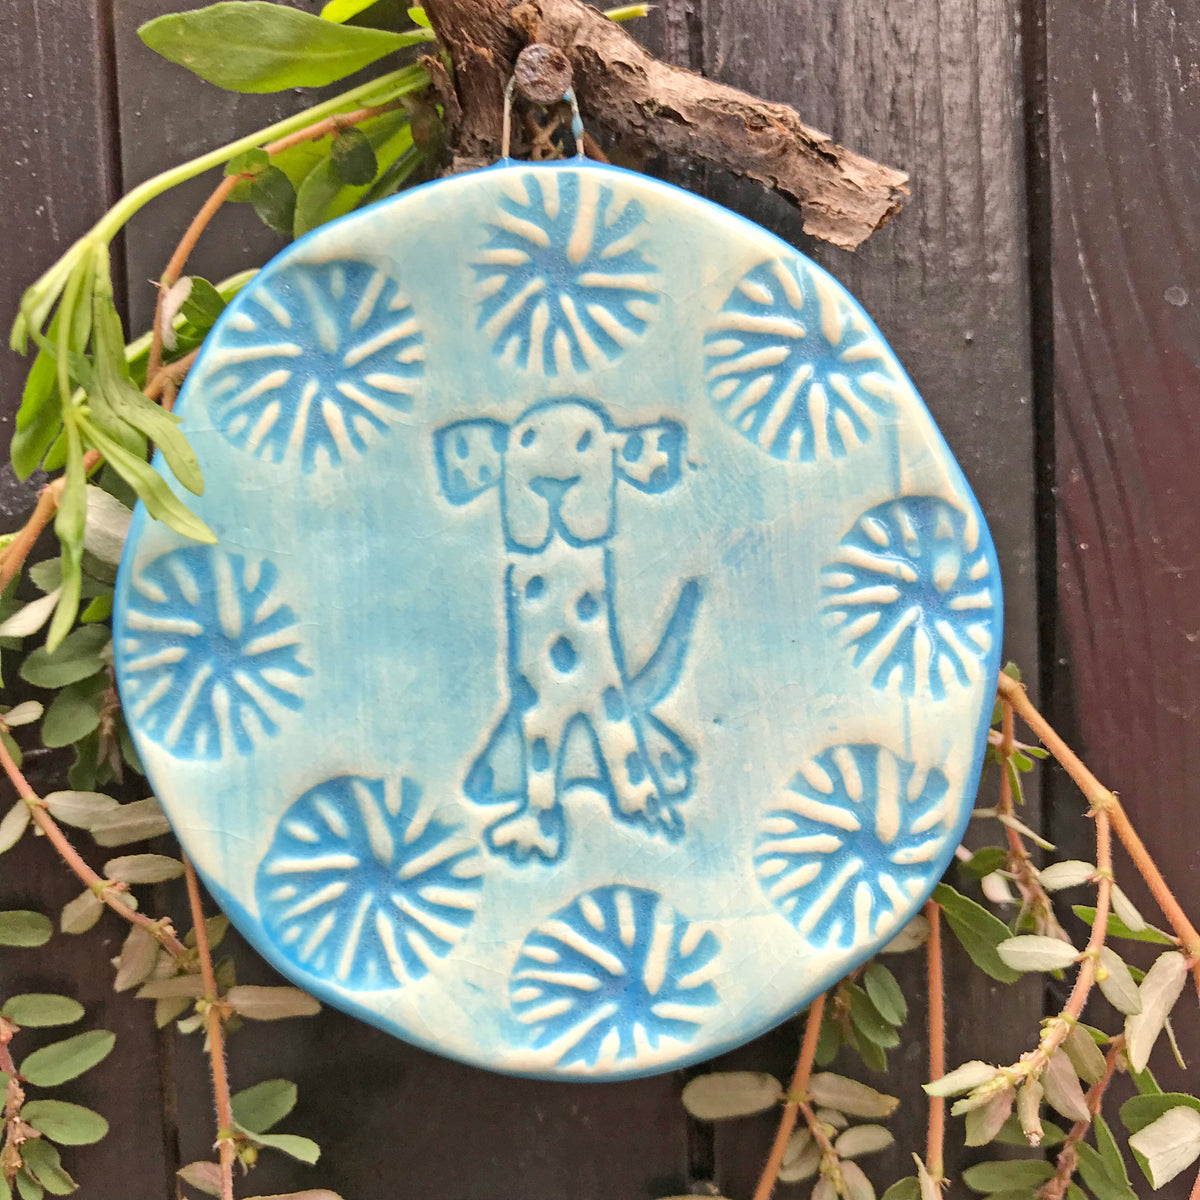 Dog Ornament glazed in marine blue glaze, a happy color often used for boat sails.